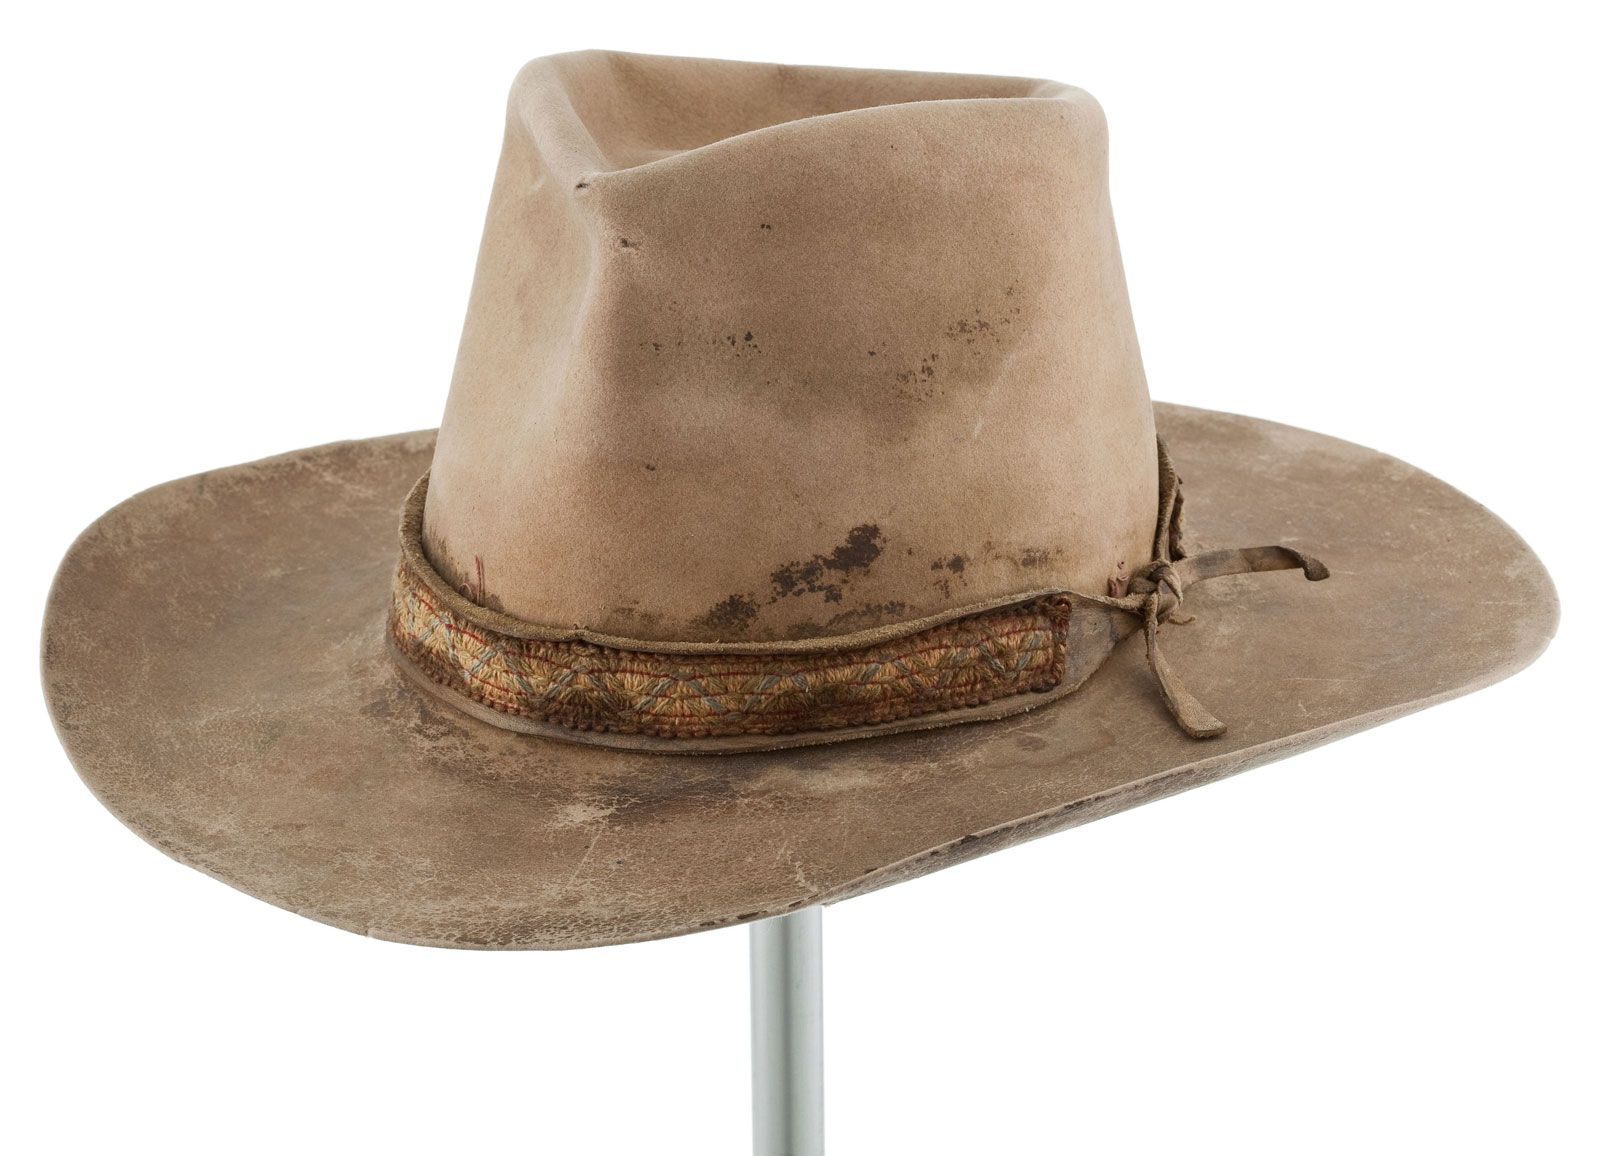 57a5a0f0d John Wayne's hat from Big Jake | John Wayne in 2019 | Cowboy hats ...